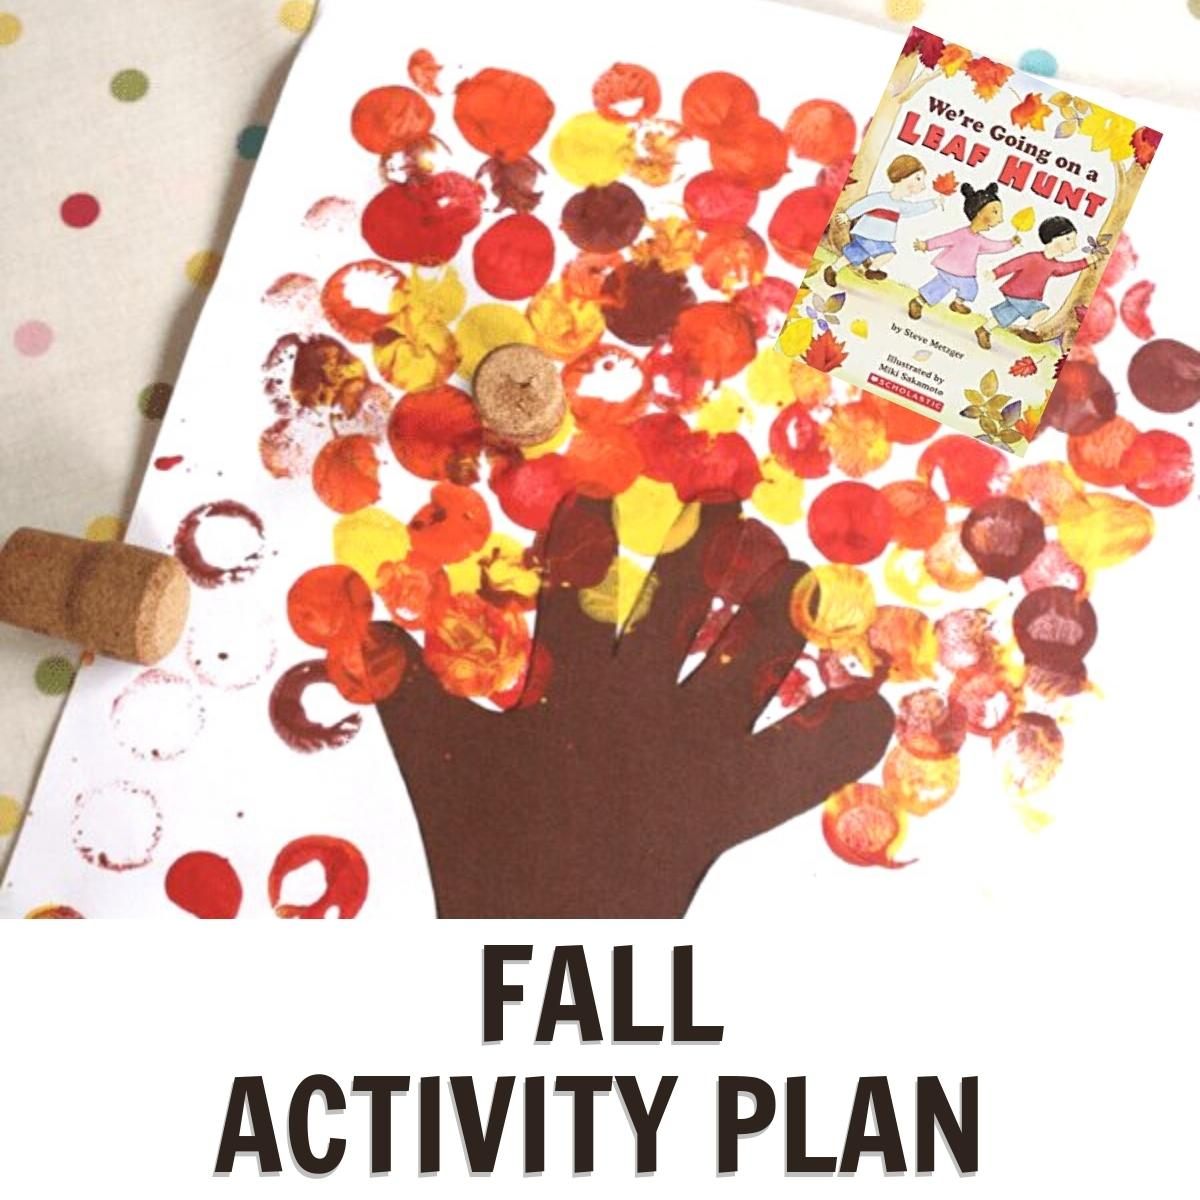 Fall Themed Week for Preschoolers Featuring We're Going on a Leaf Hunt